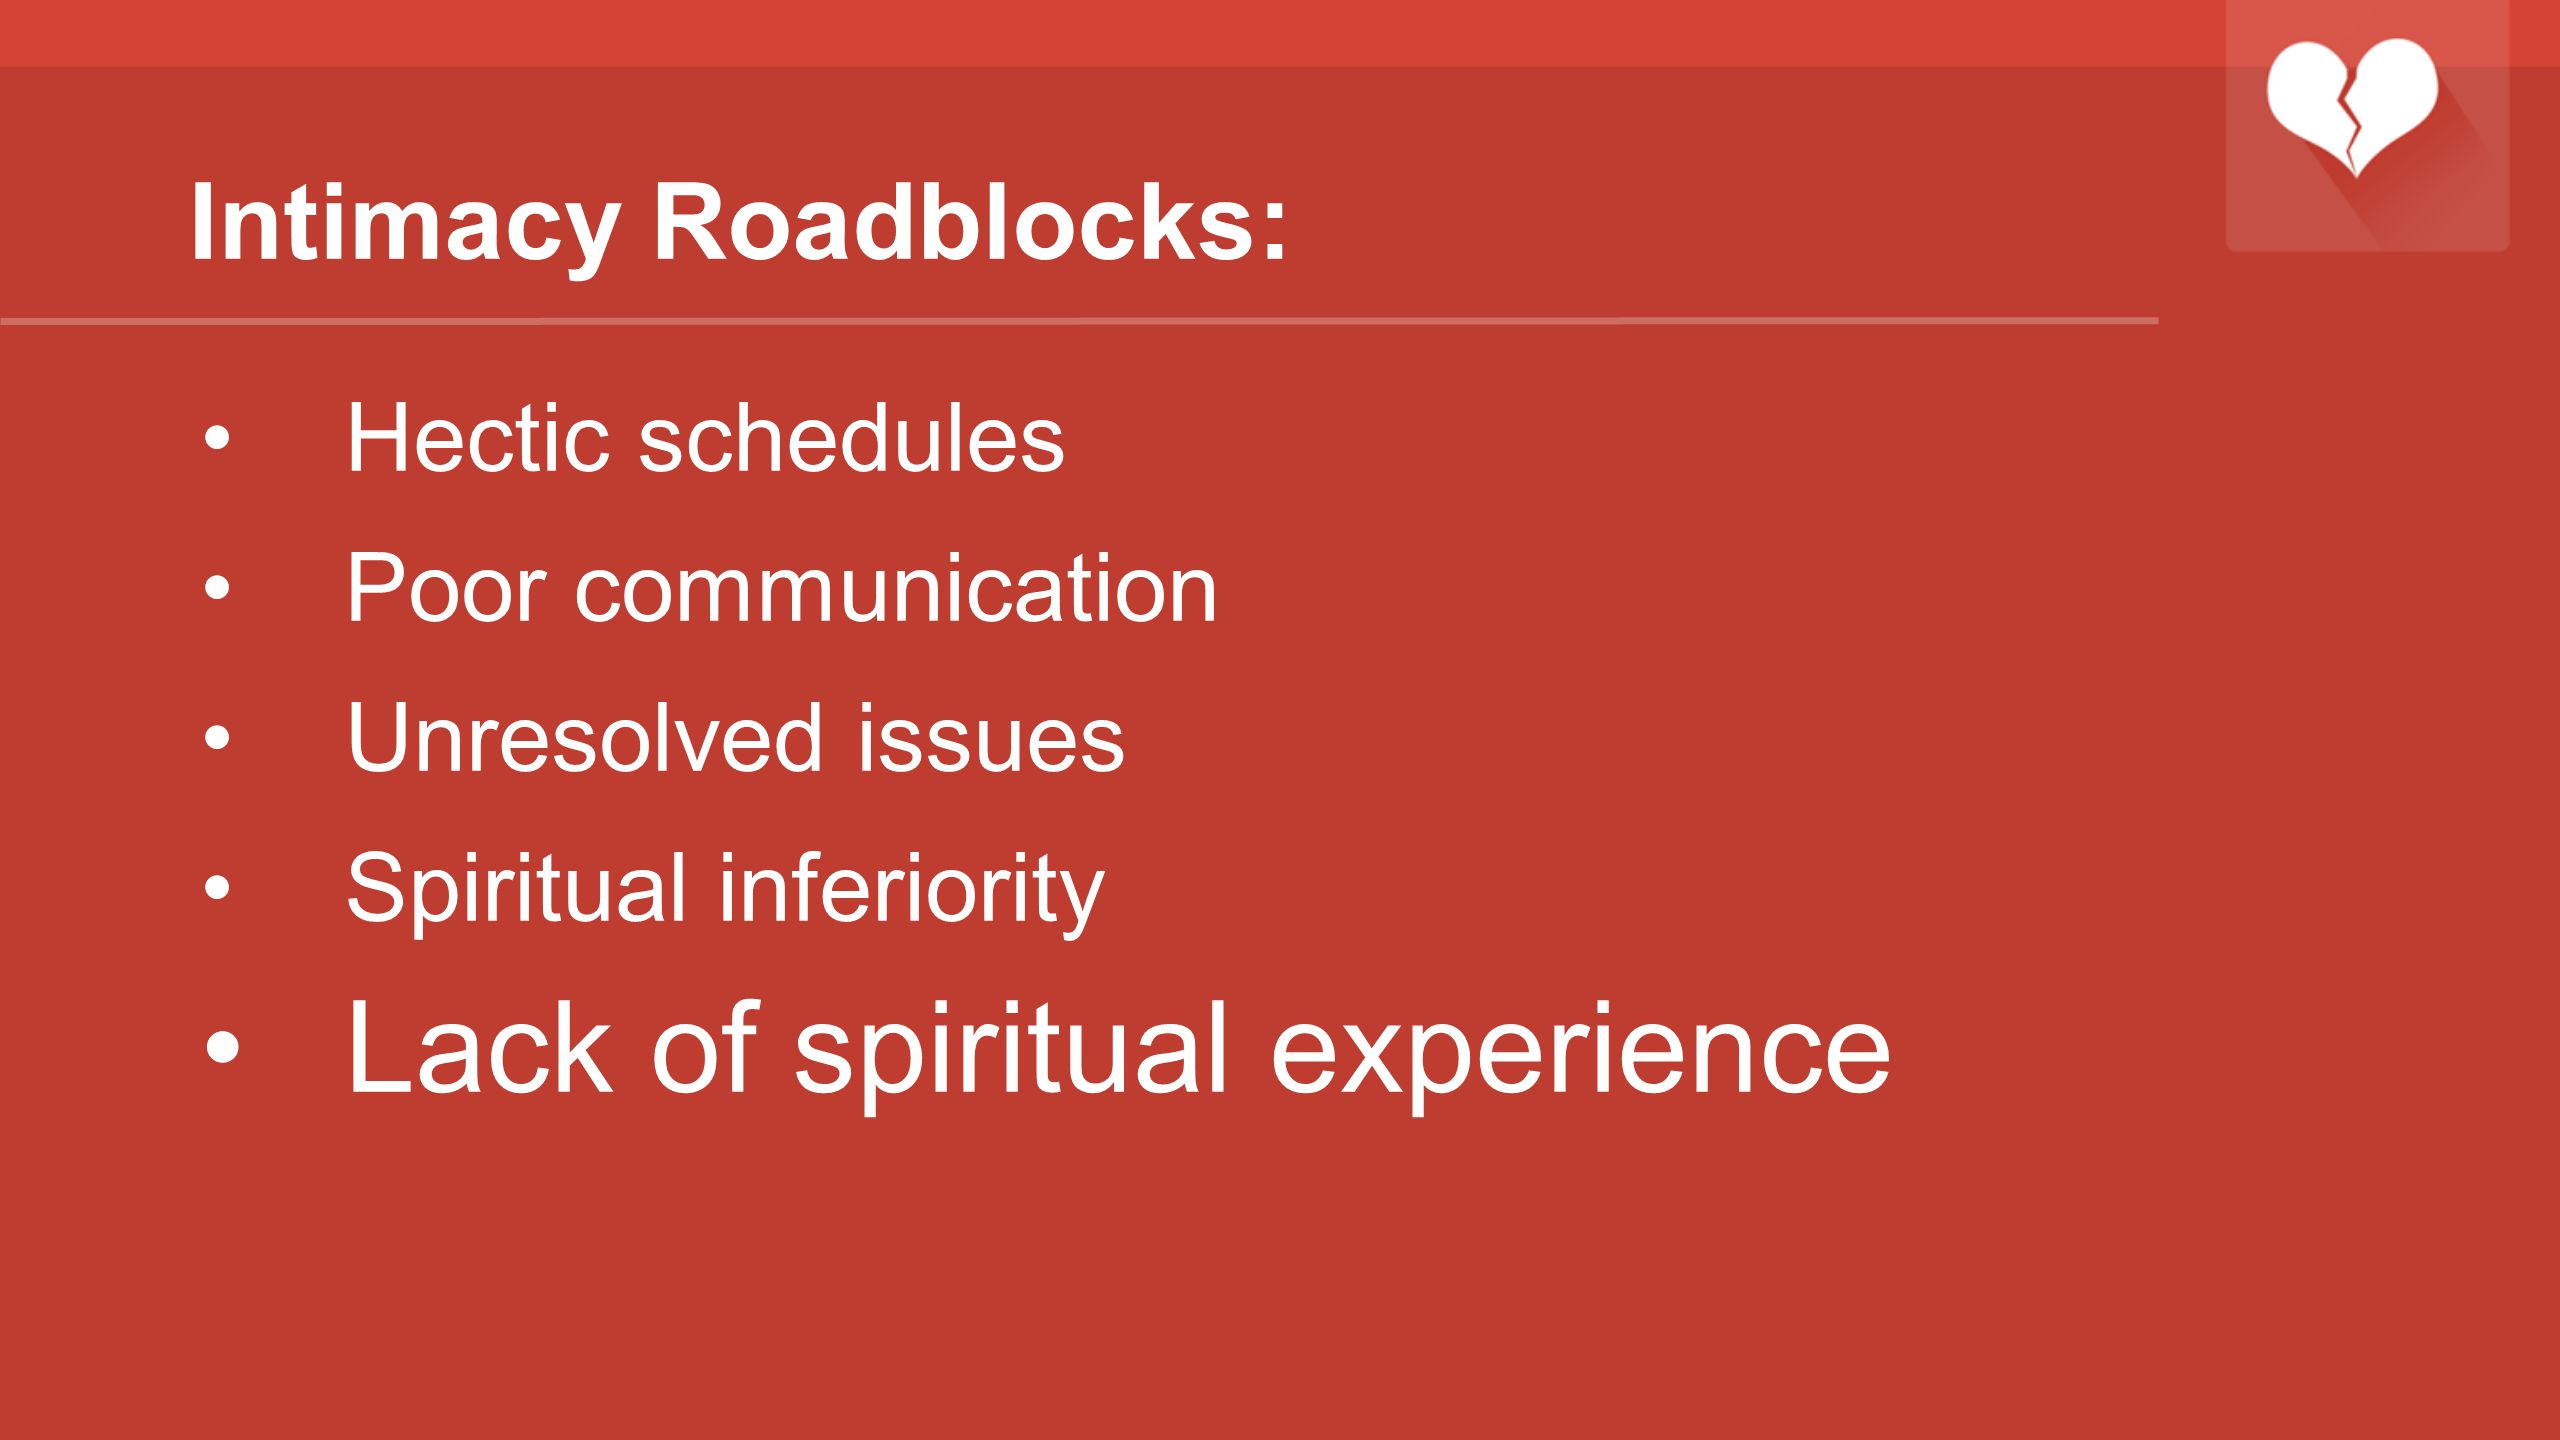 Lack of spiritual experience